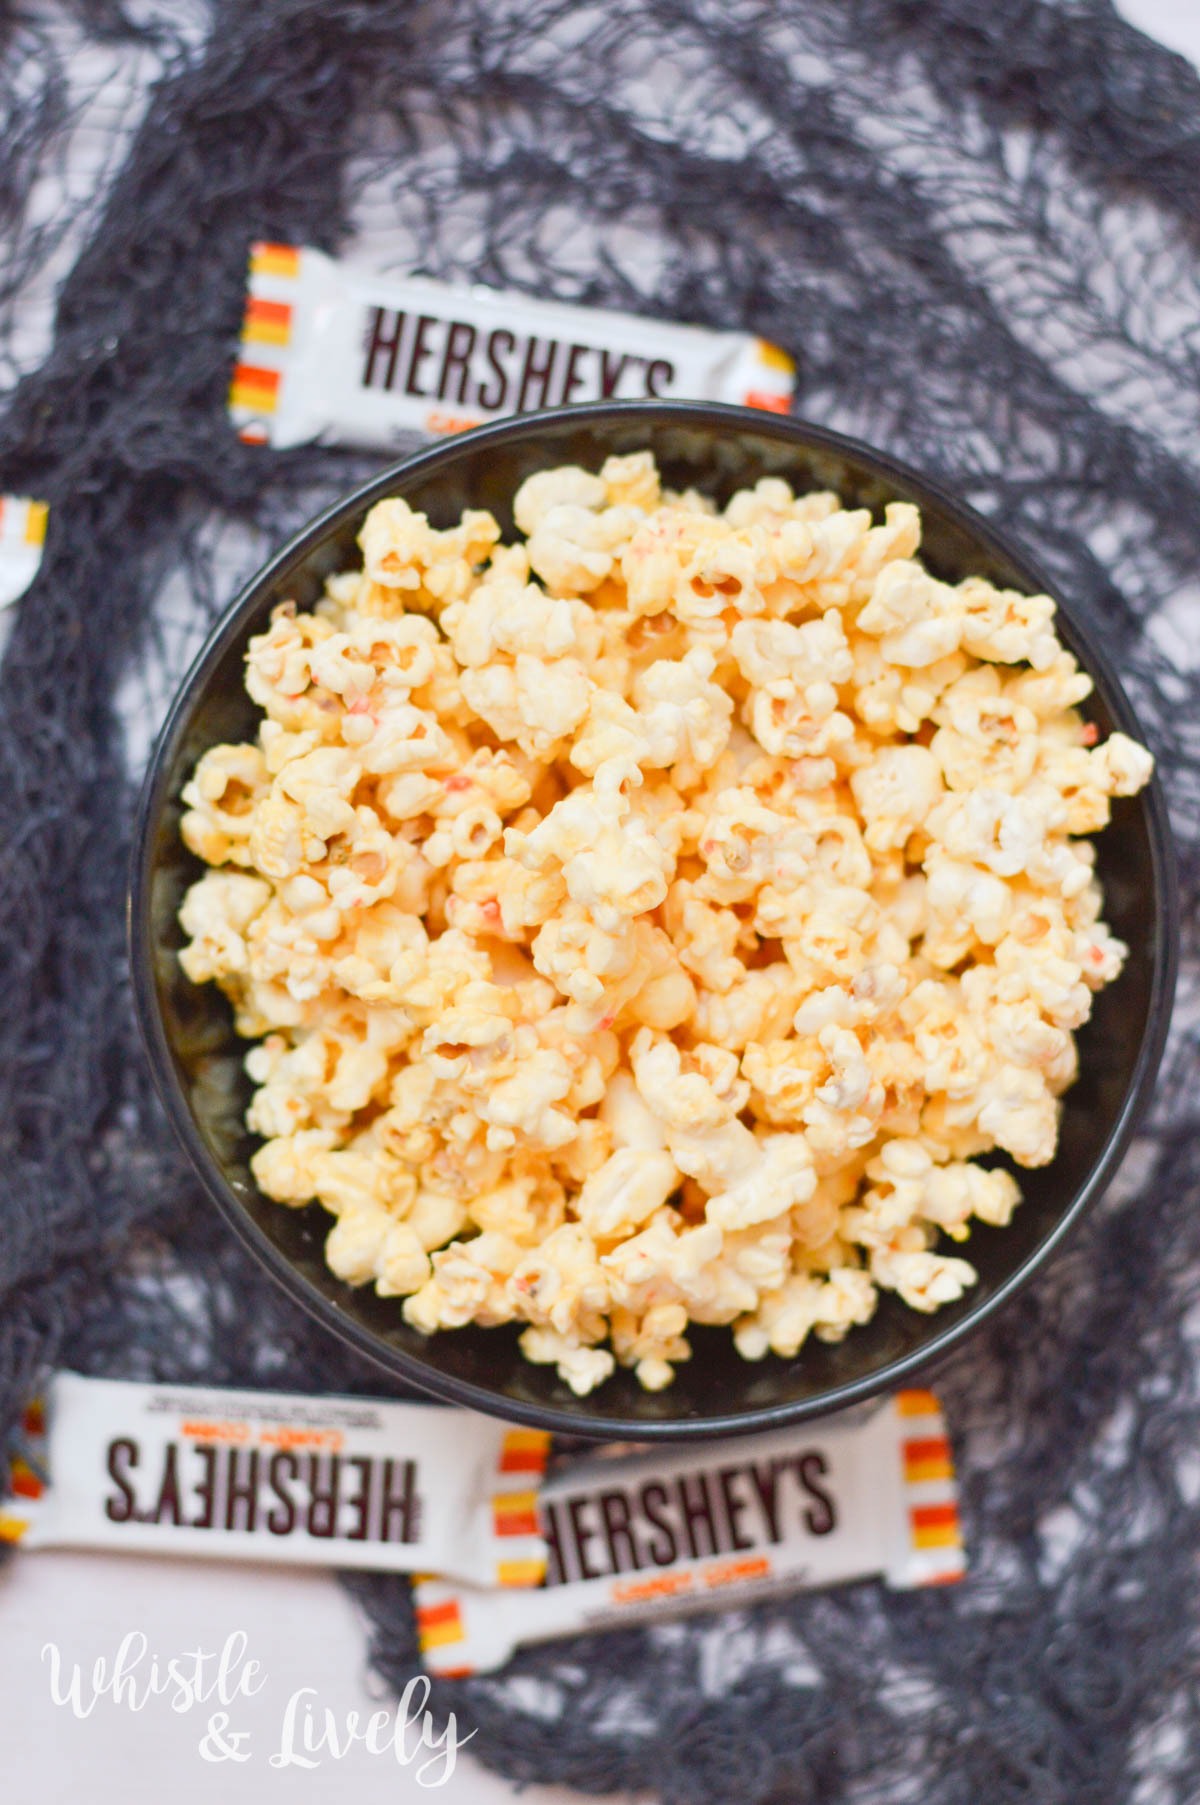 White Chocolate Candy Corn Popcorn - The perfect balance of sweet and salty, this candy corn popcorn is sure to please even those who don't love candy corn.